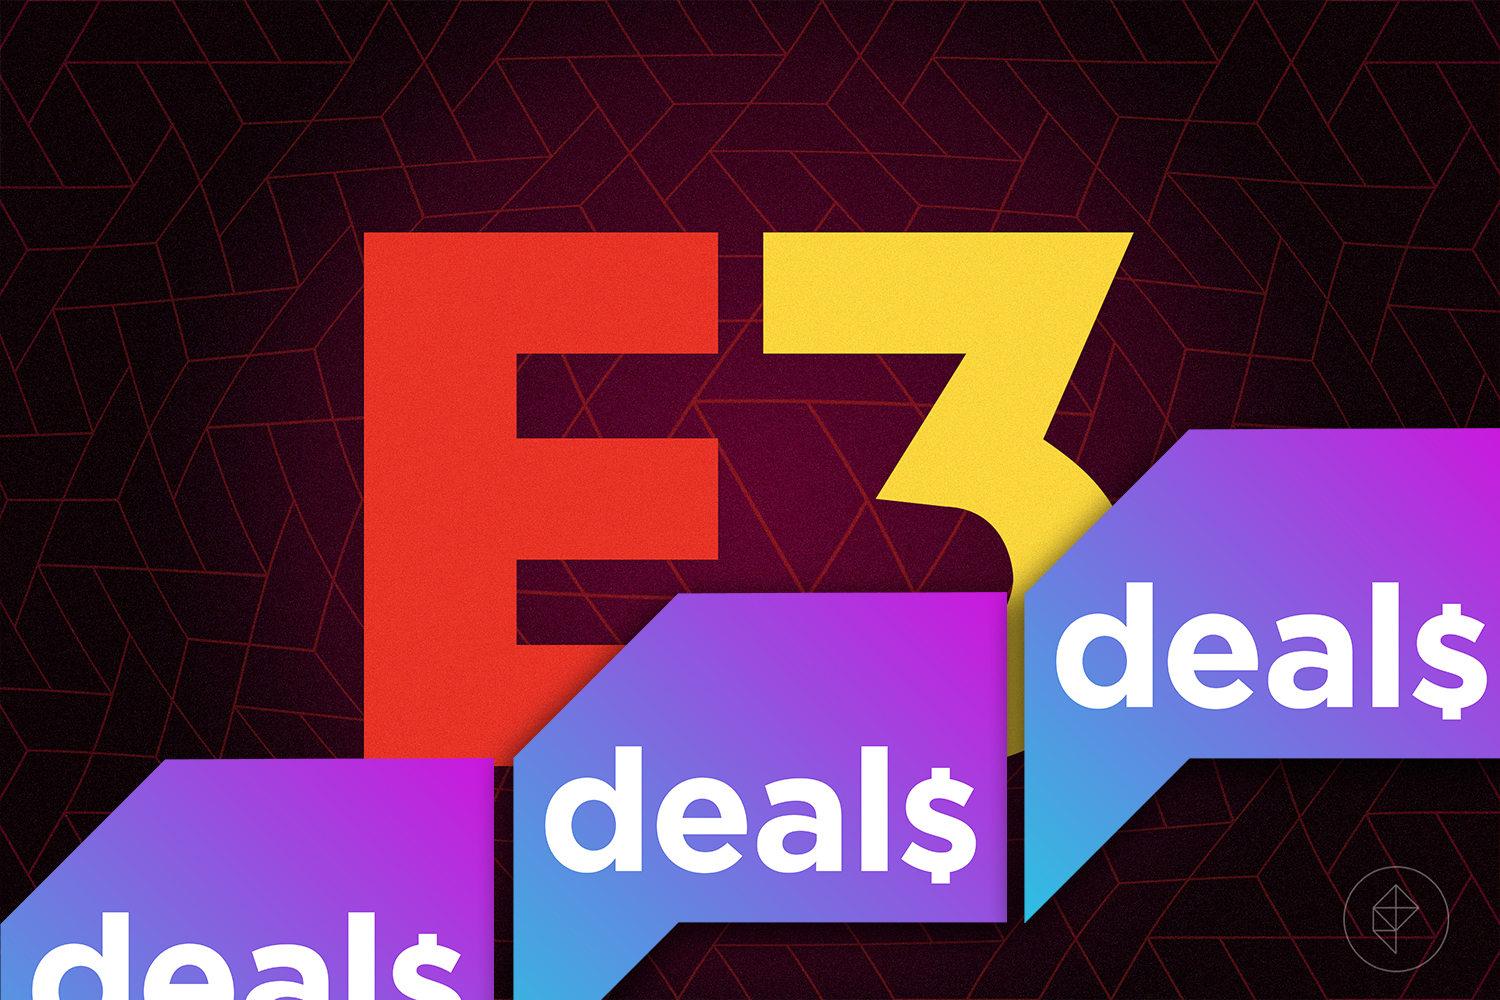 The best gaming deals from E3 2019